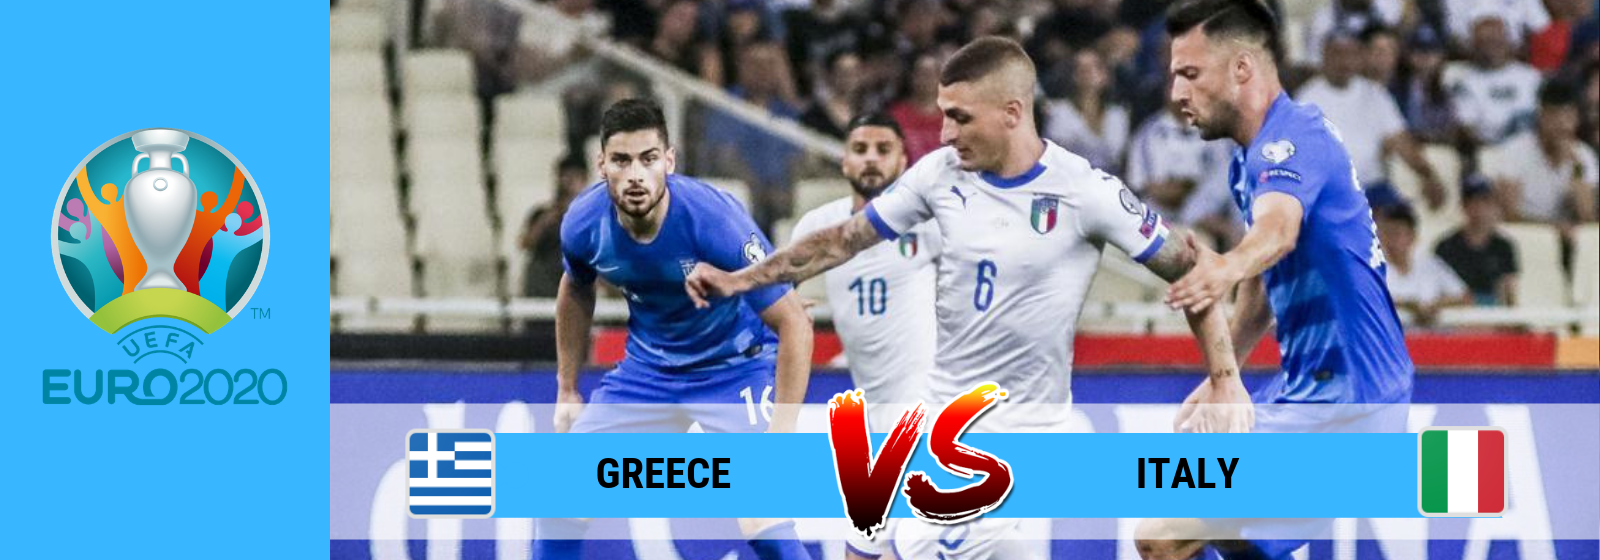 UEFA Euro 2020 Greece Vs. Italy Asian Connect